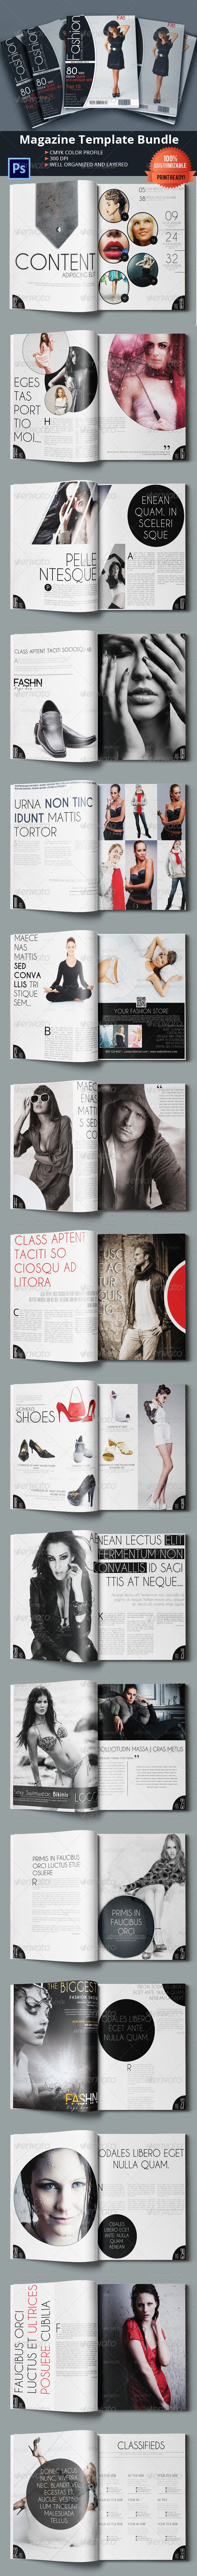 Creative Fashion Magazine #GraphicRiver Fashion Magazine Template 36 Pages Professional and clean FASHION magazine template. Fully layered and very easy to customize. Designed with adobe photoshop CS5 (works with CS2 and higher). Smart Objects ( Help! ) CMYK Colors 300DPI Print Ready 36 Pages Multipurpose A4 Free Fonts Used: .fontsquirrel /fonts/Caviar-Dreams .fontsquirrel /fonts/open-sans .fontsquirrel /fonts/Rothman Click Here to Generate QR Codes *Photos in the preview image are NOT…